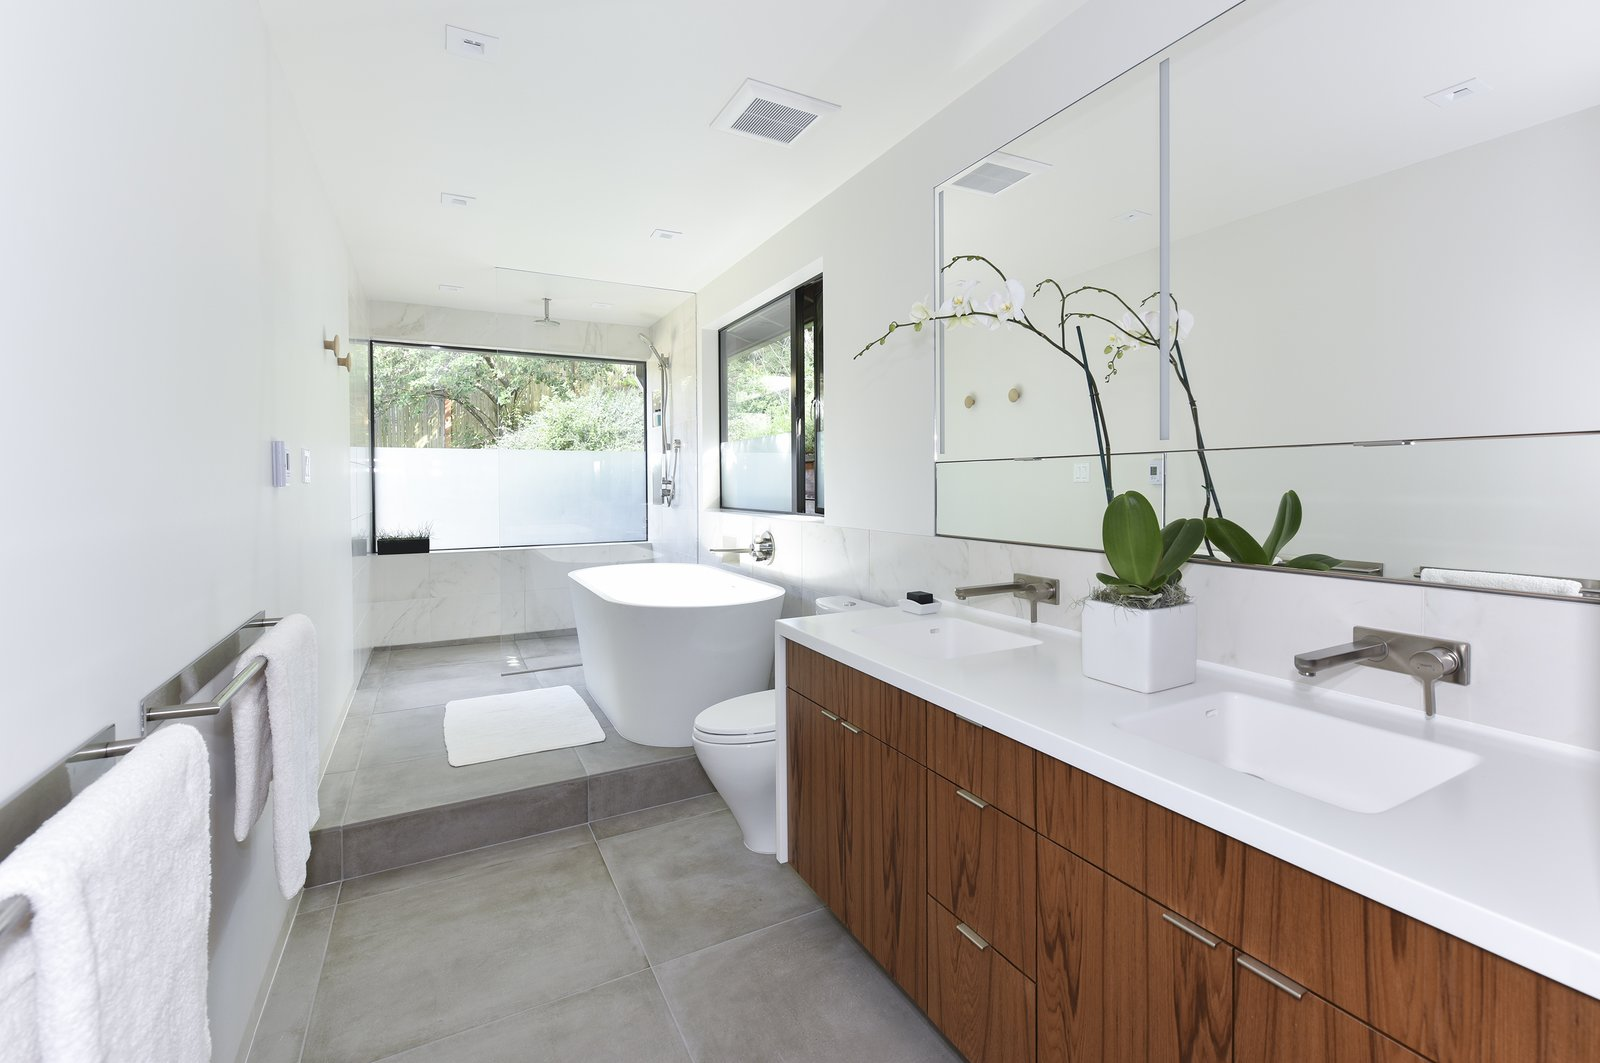 Contemporary Master Bathroom Remodel Modern Home in Kensington,… on ...